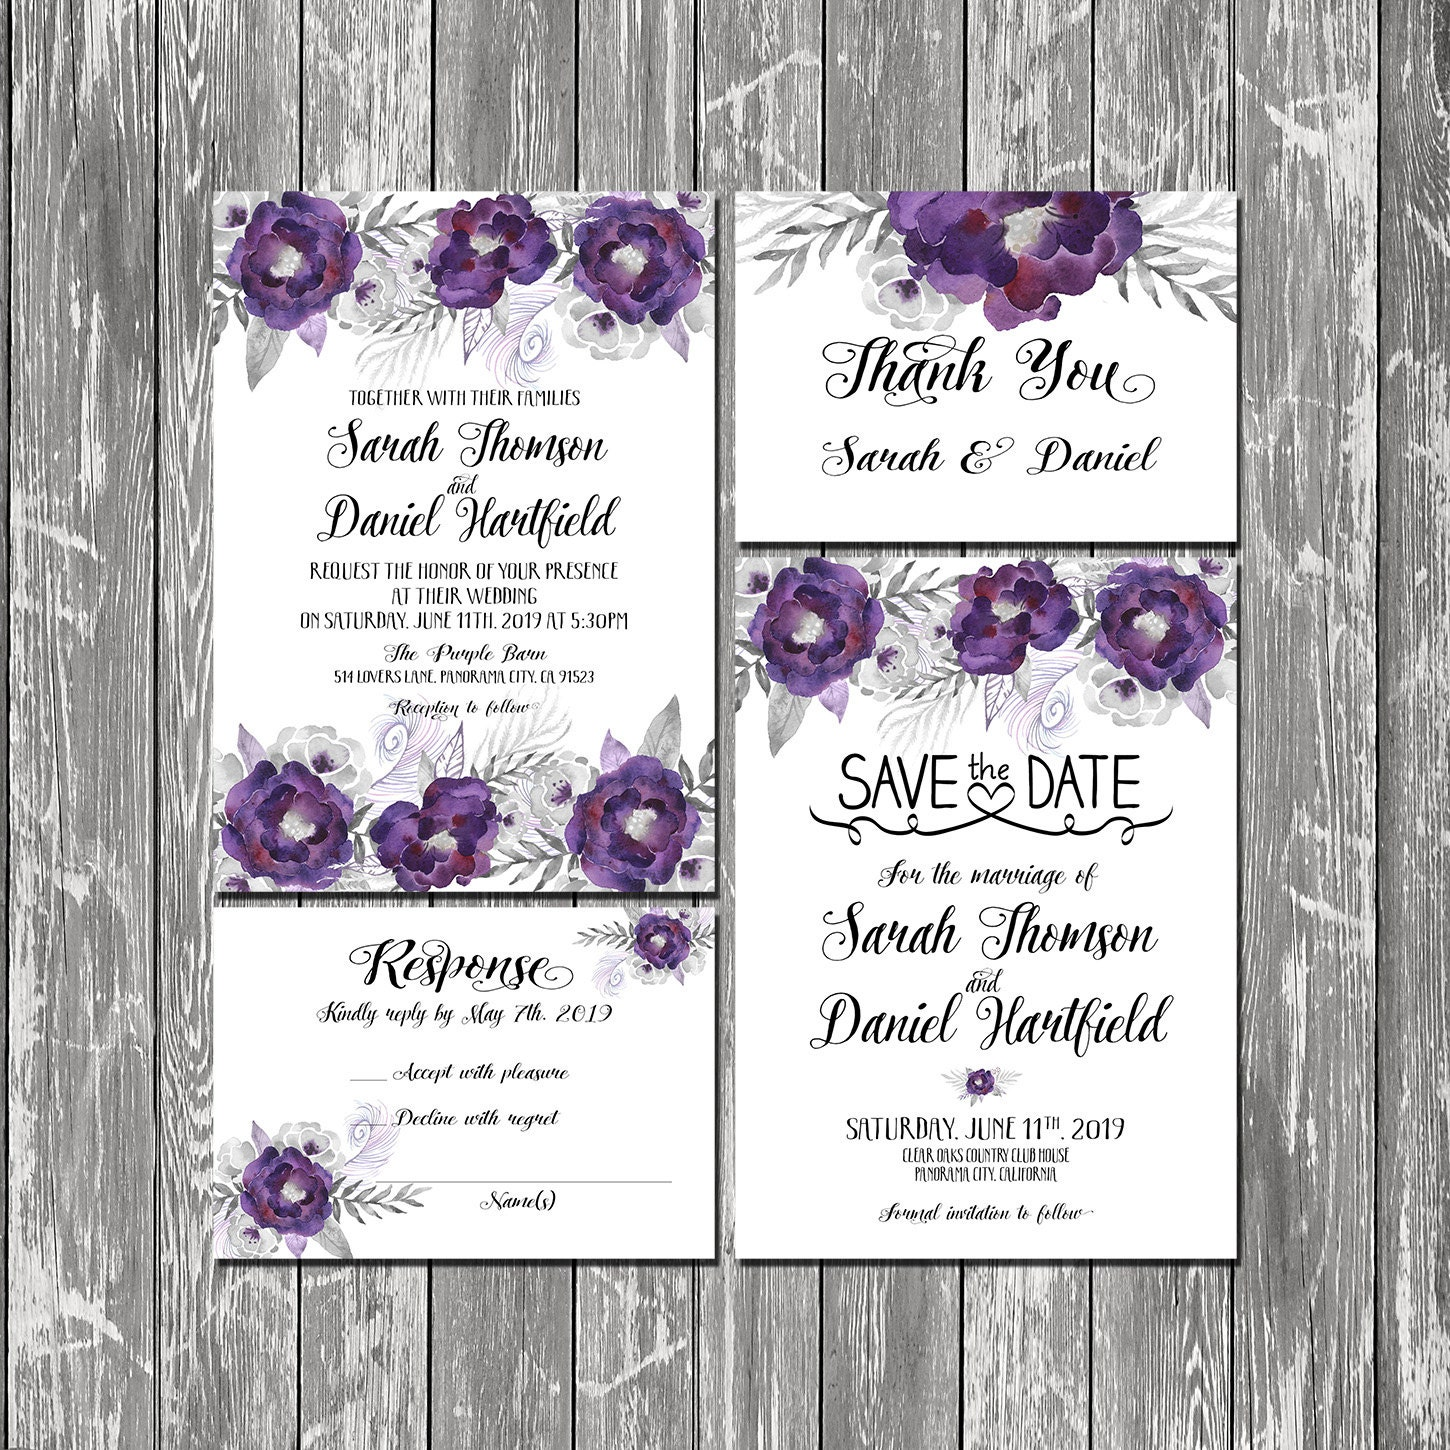 Silver And Purple Blank Invitations: Printable Wedding Invitation Floral Purple And Silver Wedding